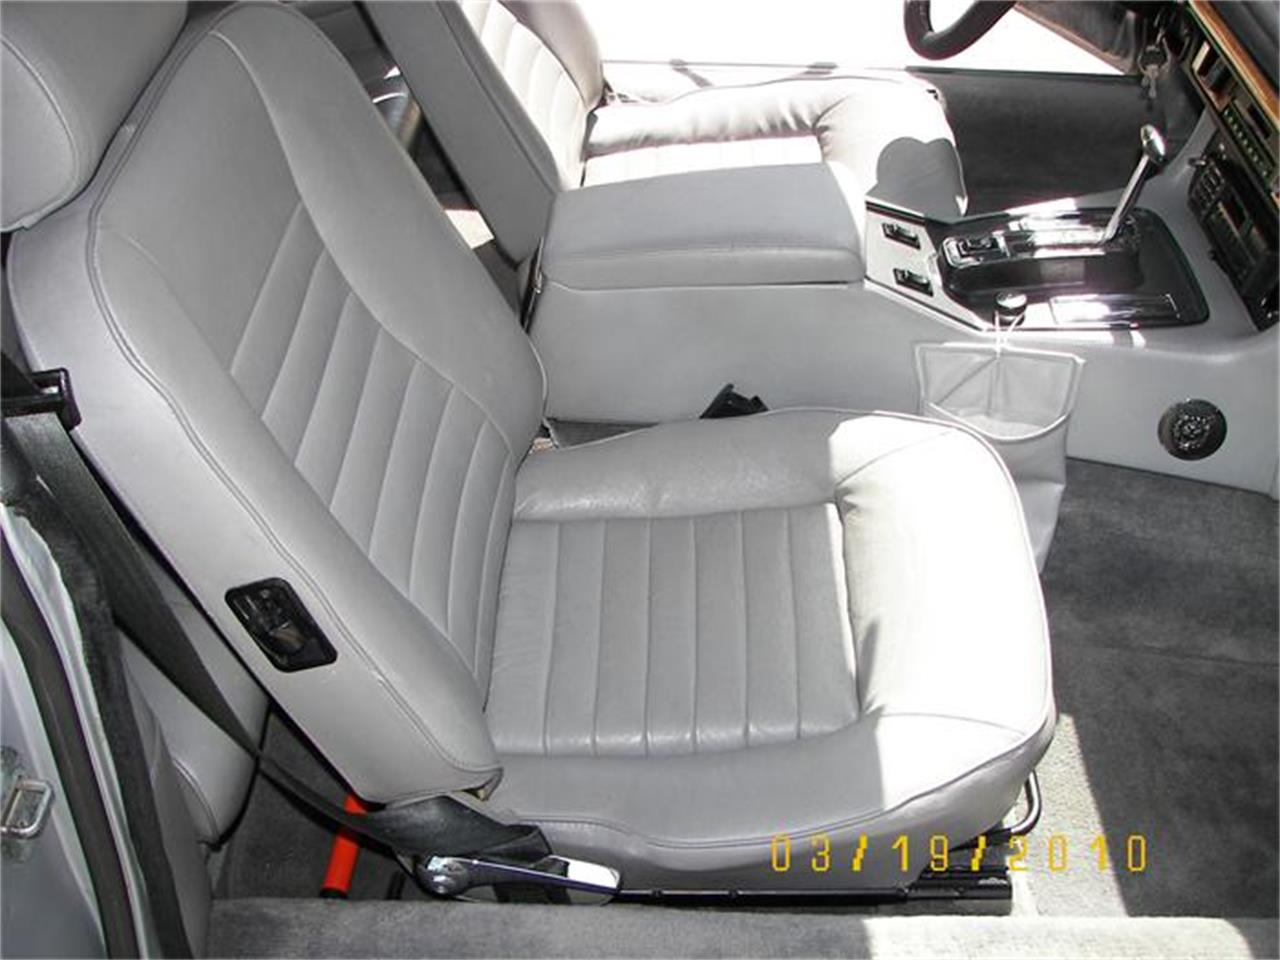 Large Picture of 1985 Jaguar XJS located in Fremont California - $7,500.00 - 2YG4